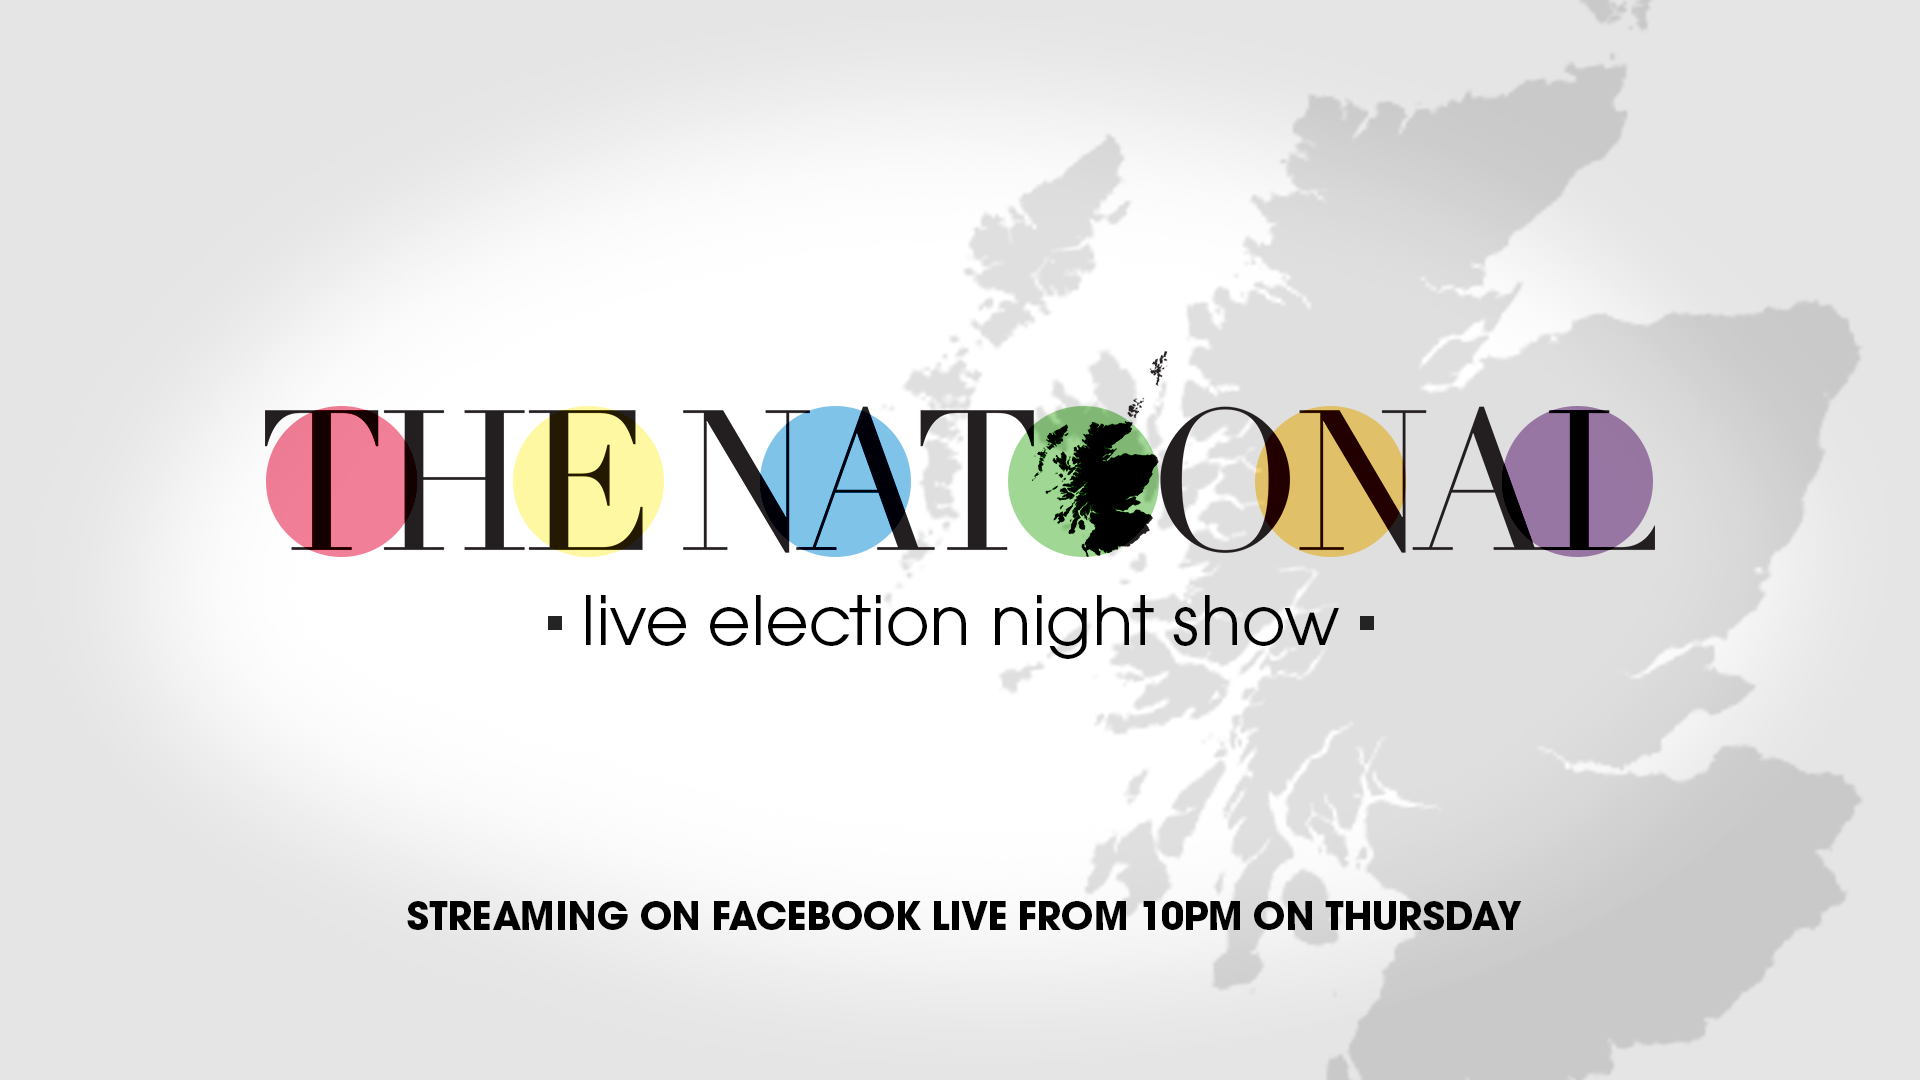 The National brings you our very own election night show